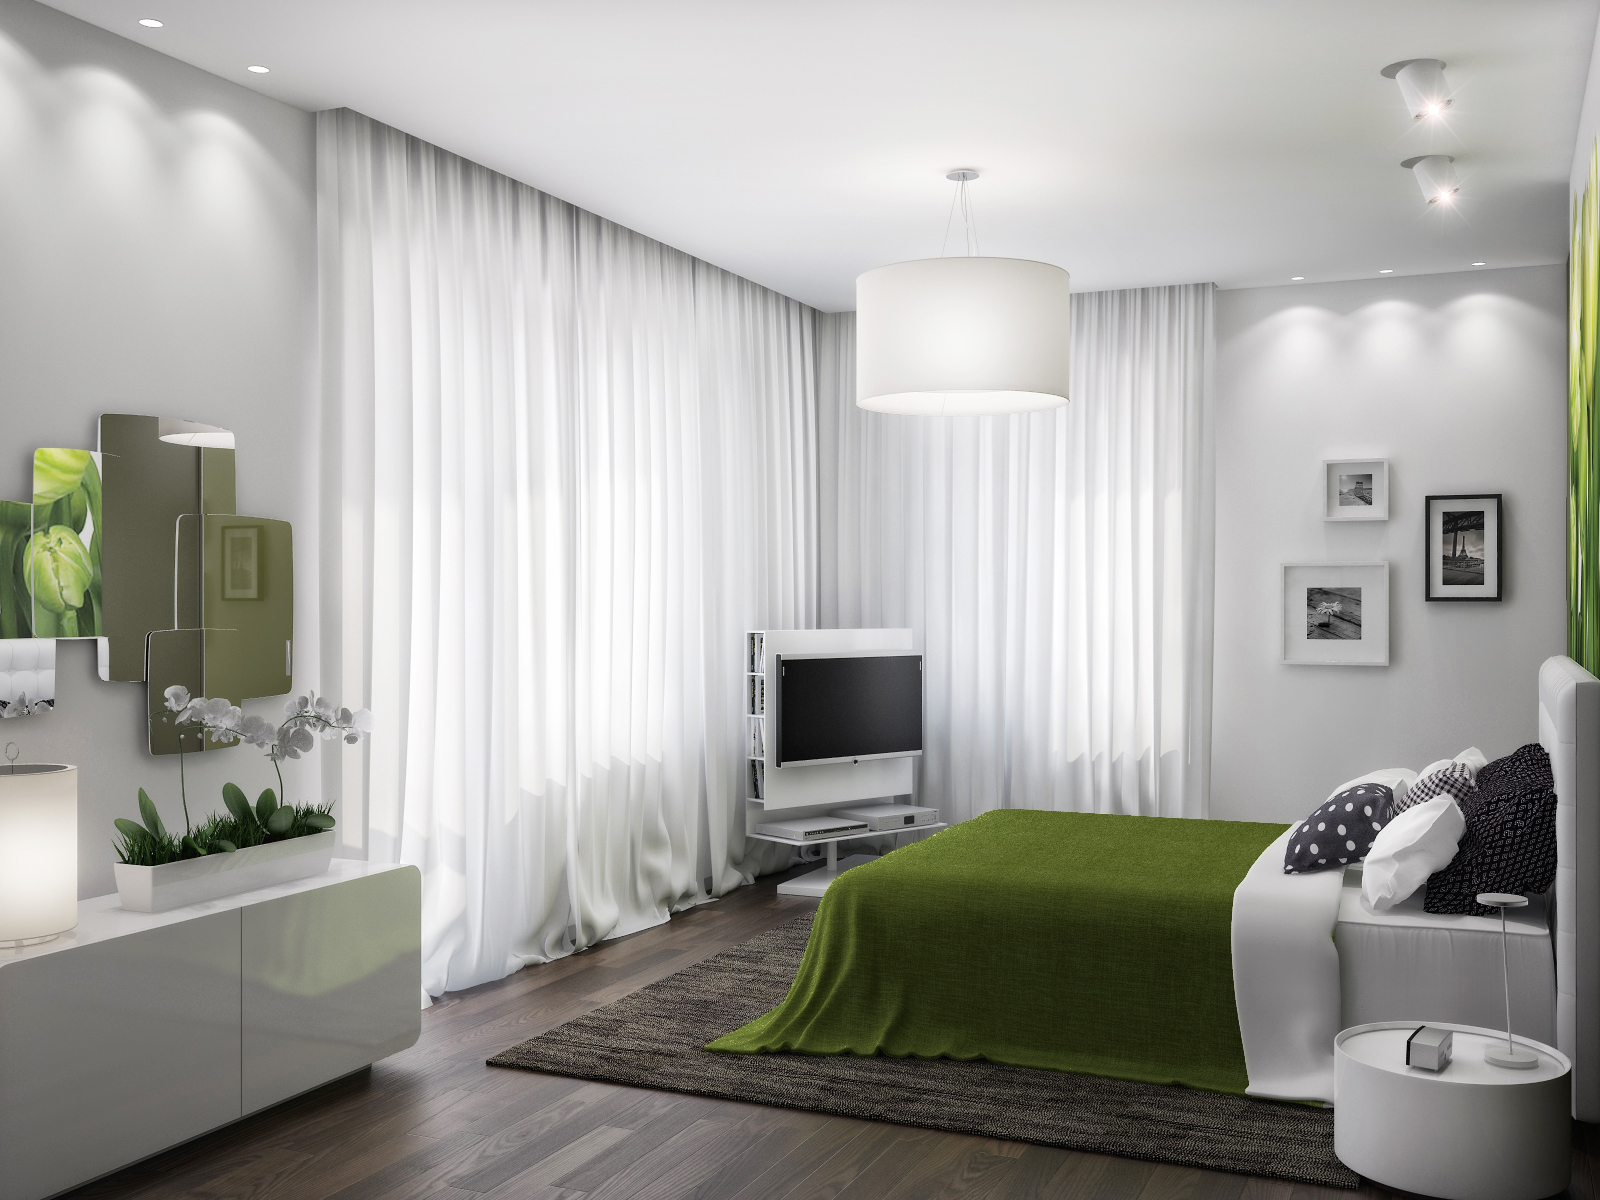 Green white bedroom scheme interior design ideas for Bedroom interior designs green